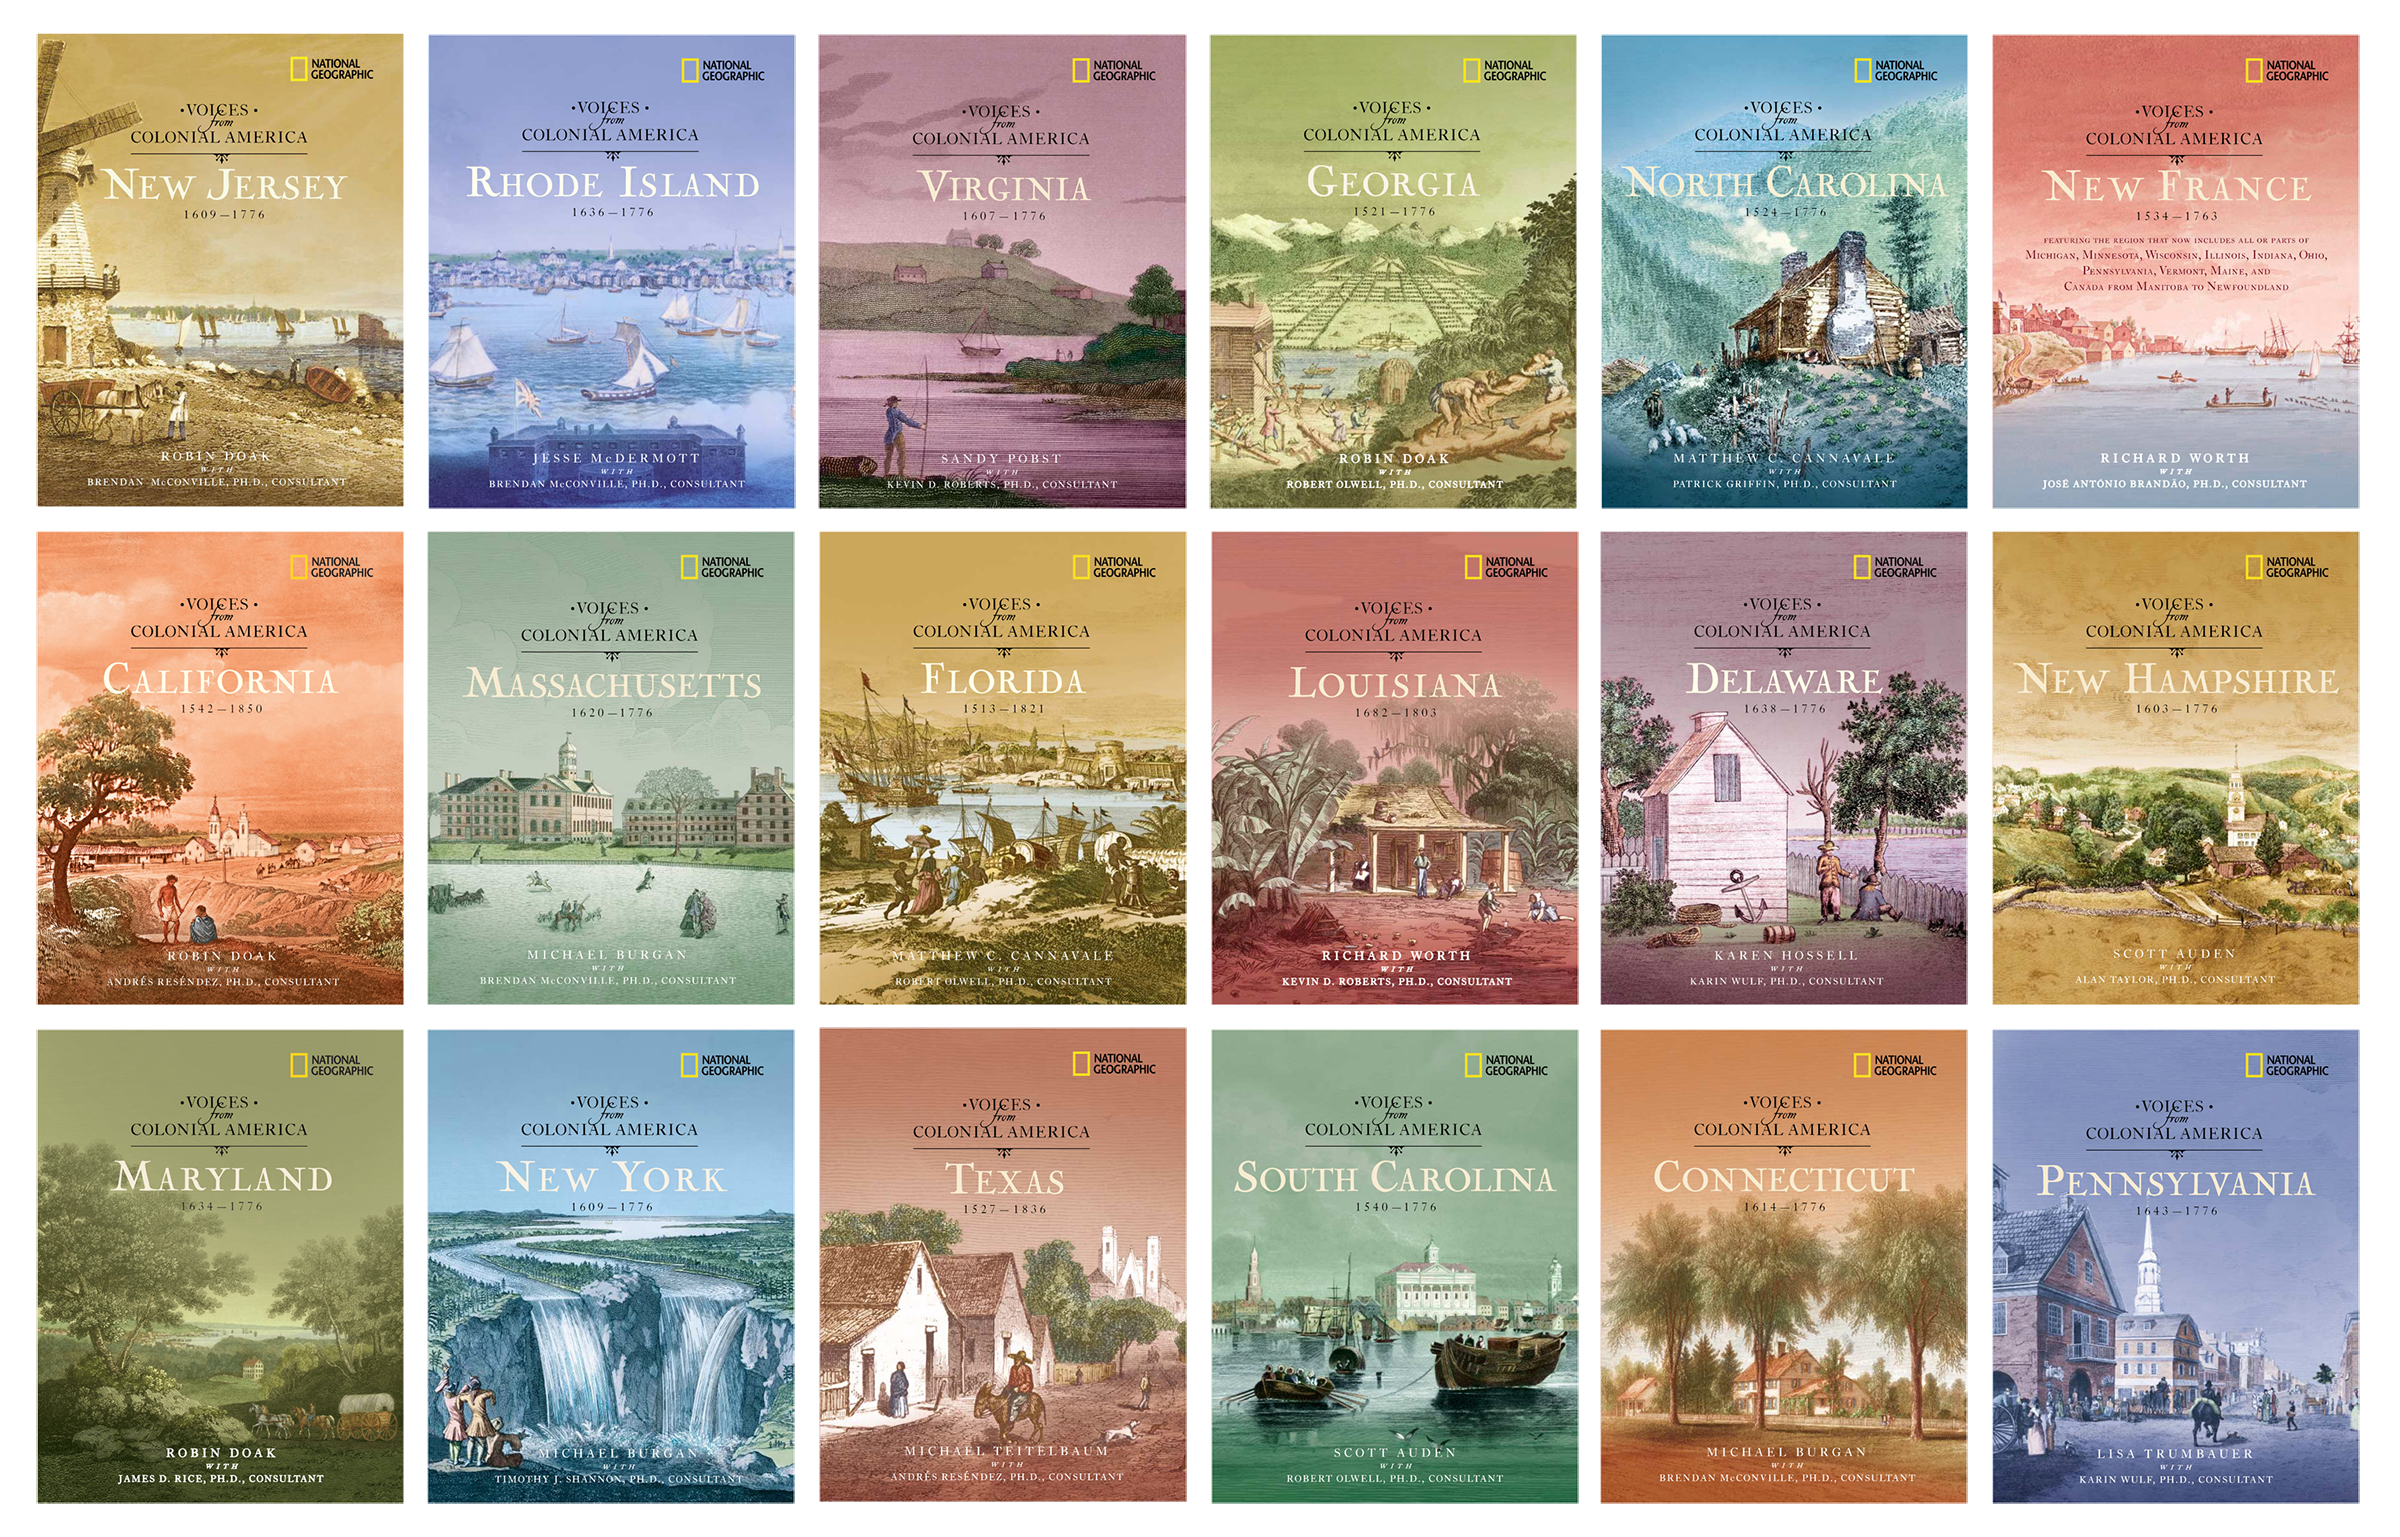 Covers feature hand-colored engravings from the 1700s and 1800s.